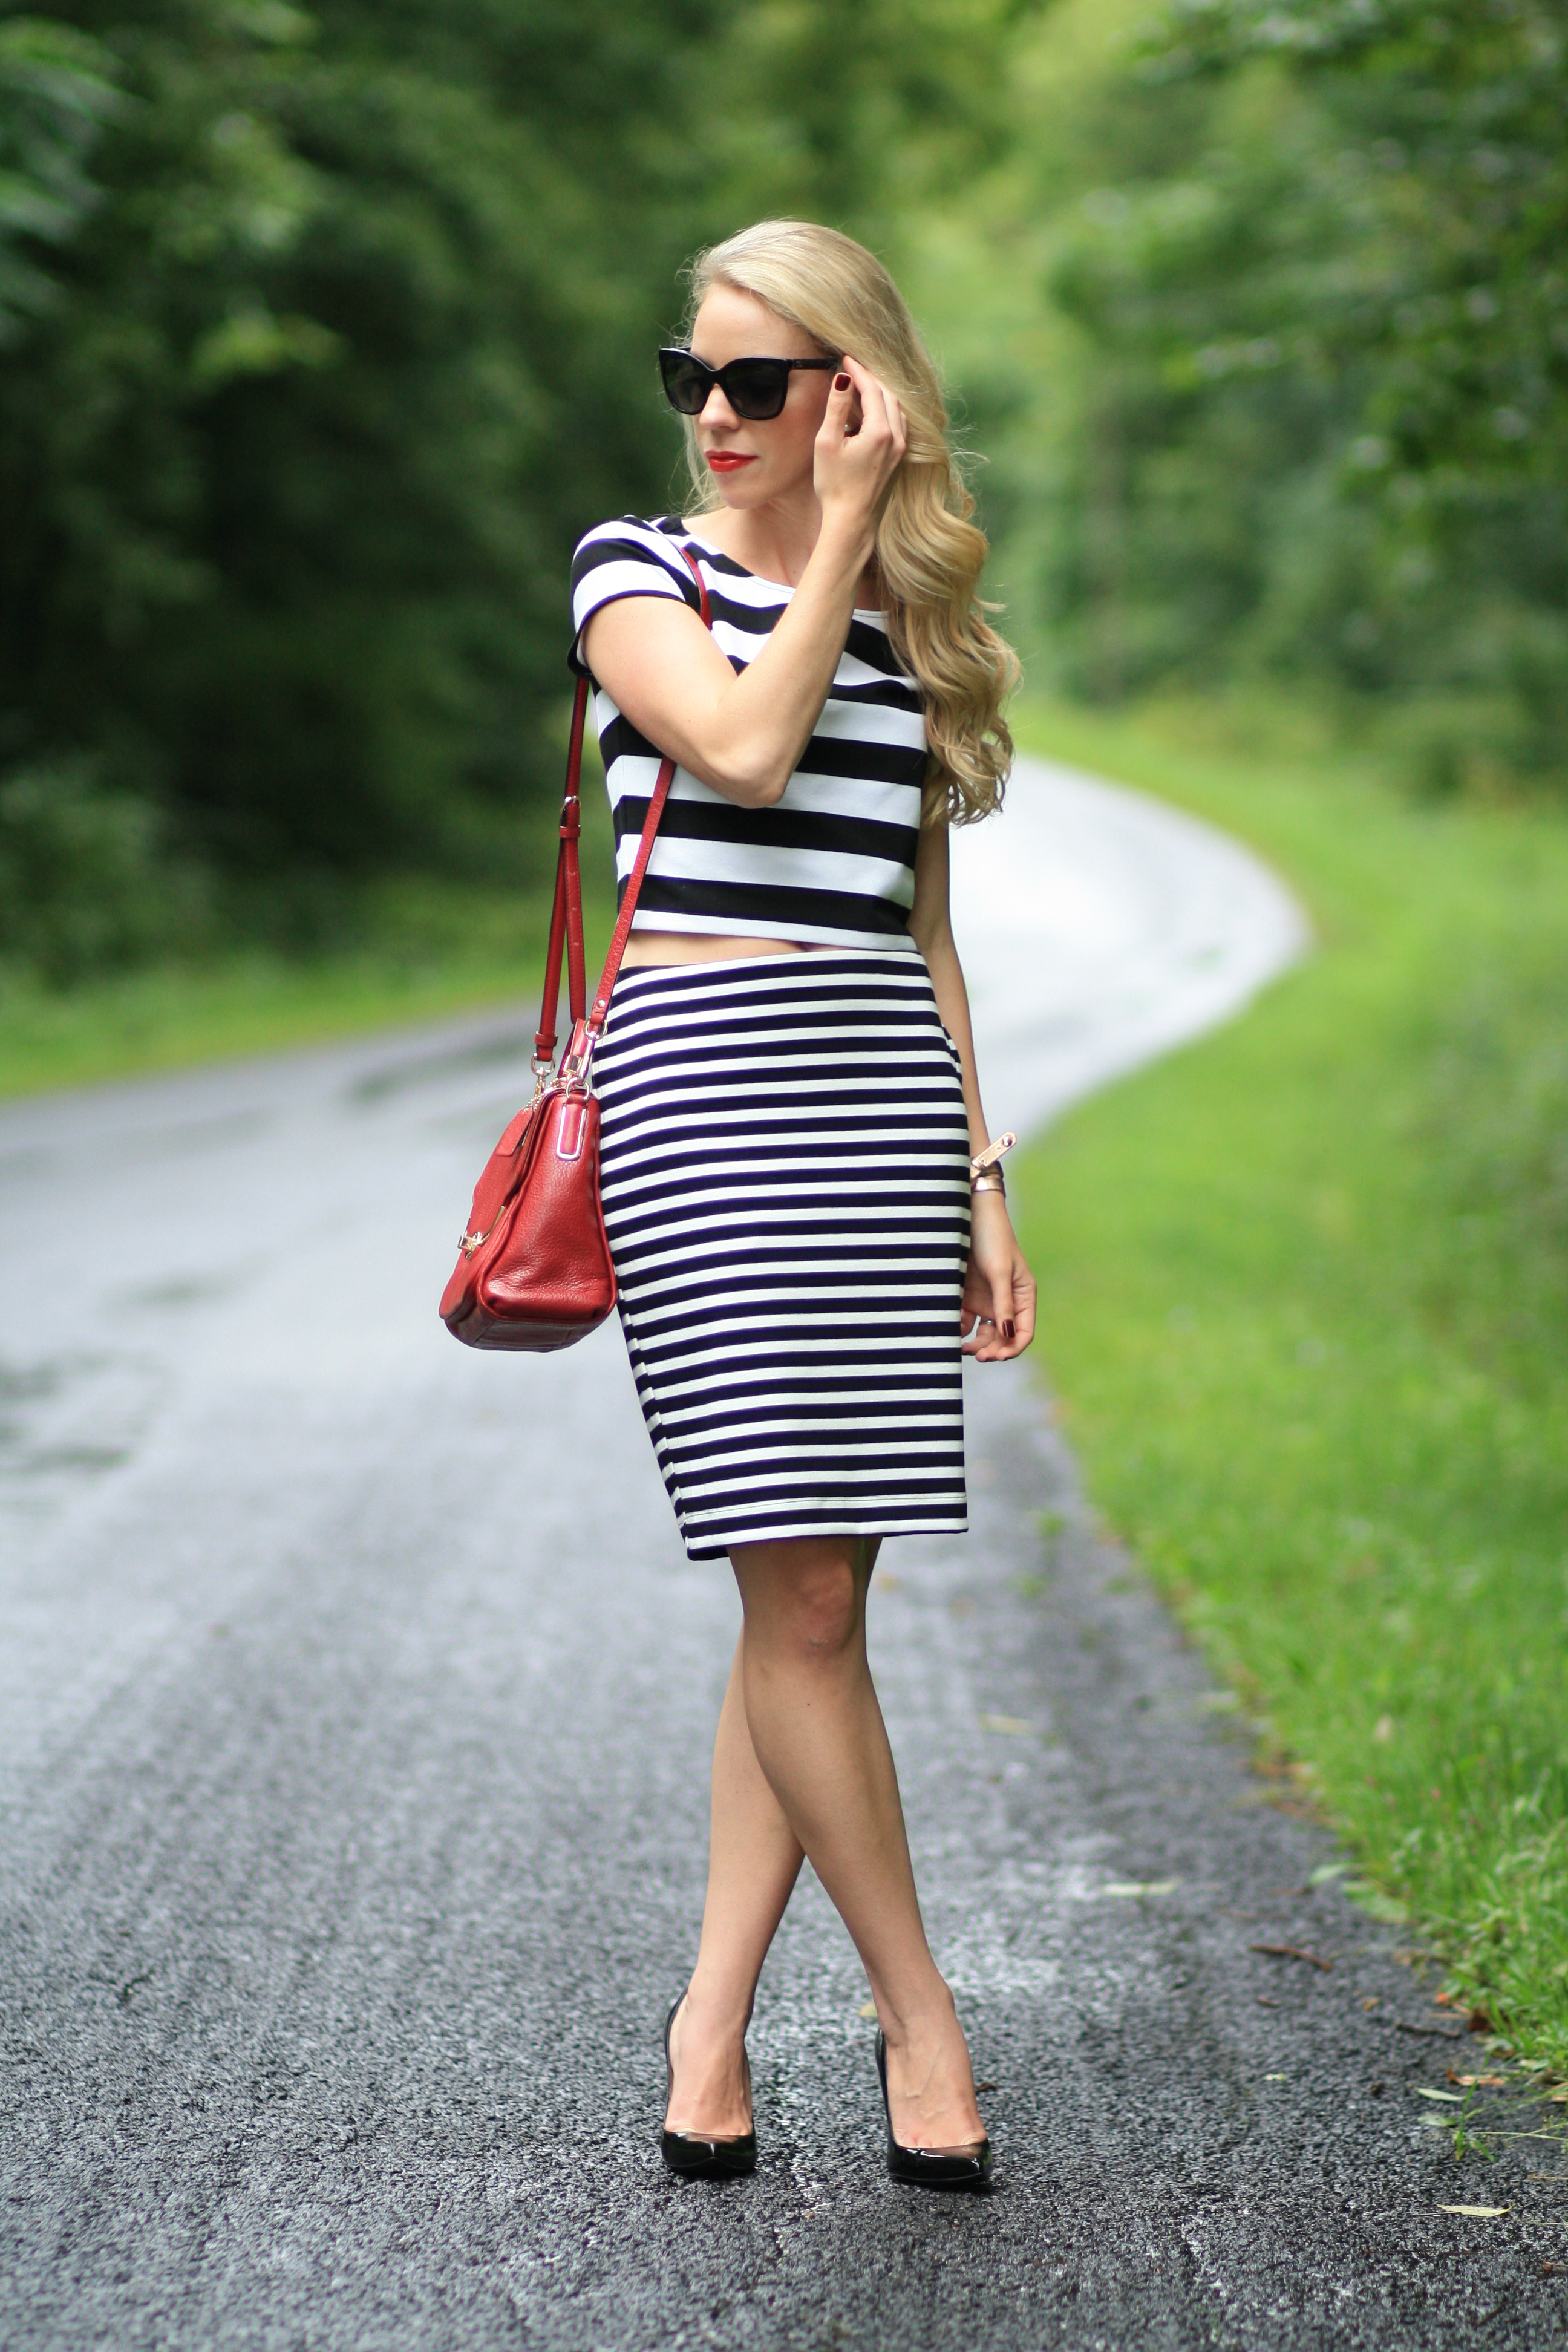 Black dress with red bag -  Stripe Black And White Striped Crop Top Black And White Striped Pencil Skirt Coach Red